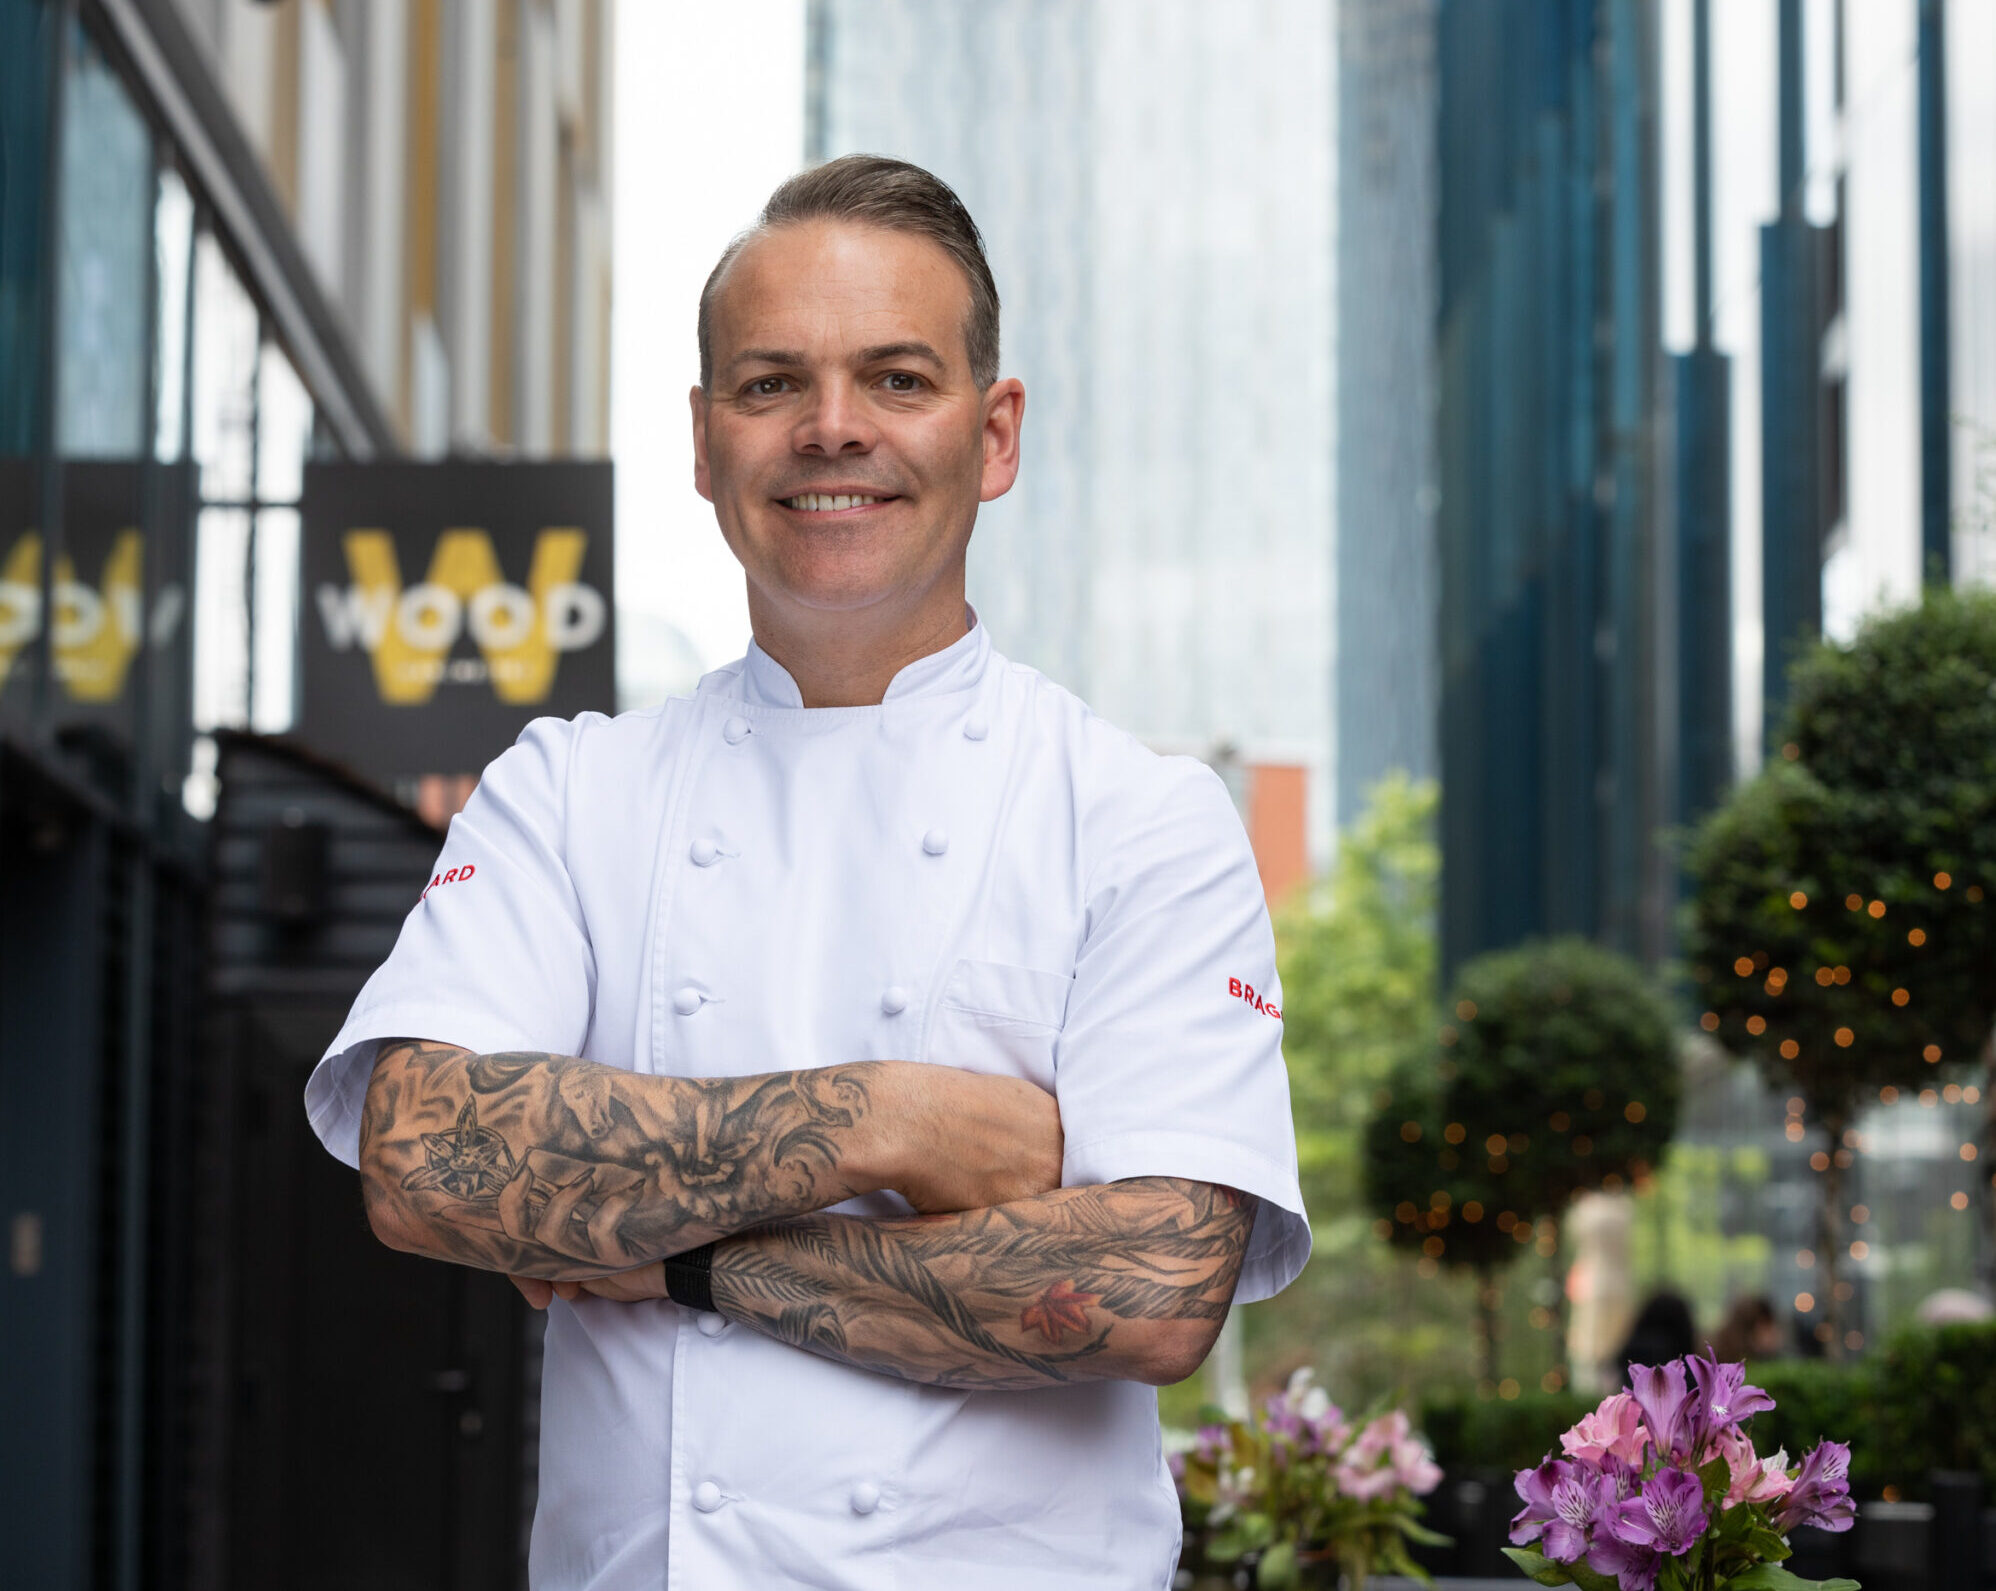 Simon Wood is turning his Manchester restaurant into a 'tacos and tequila' terrace next month, The Manc